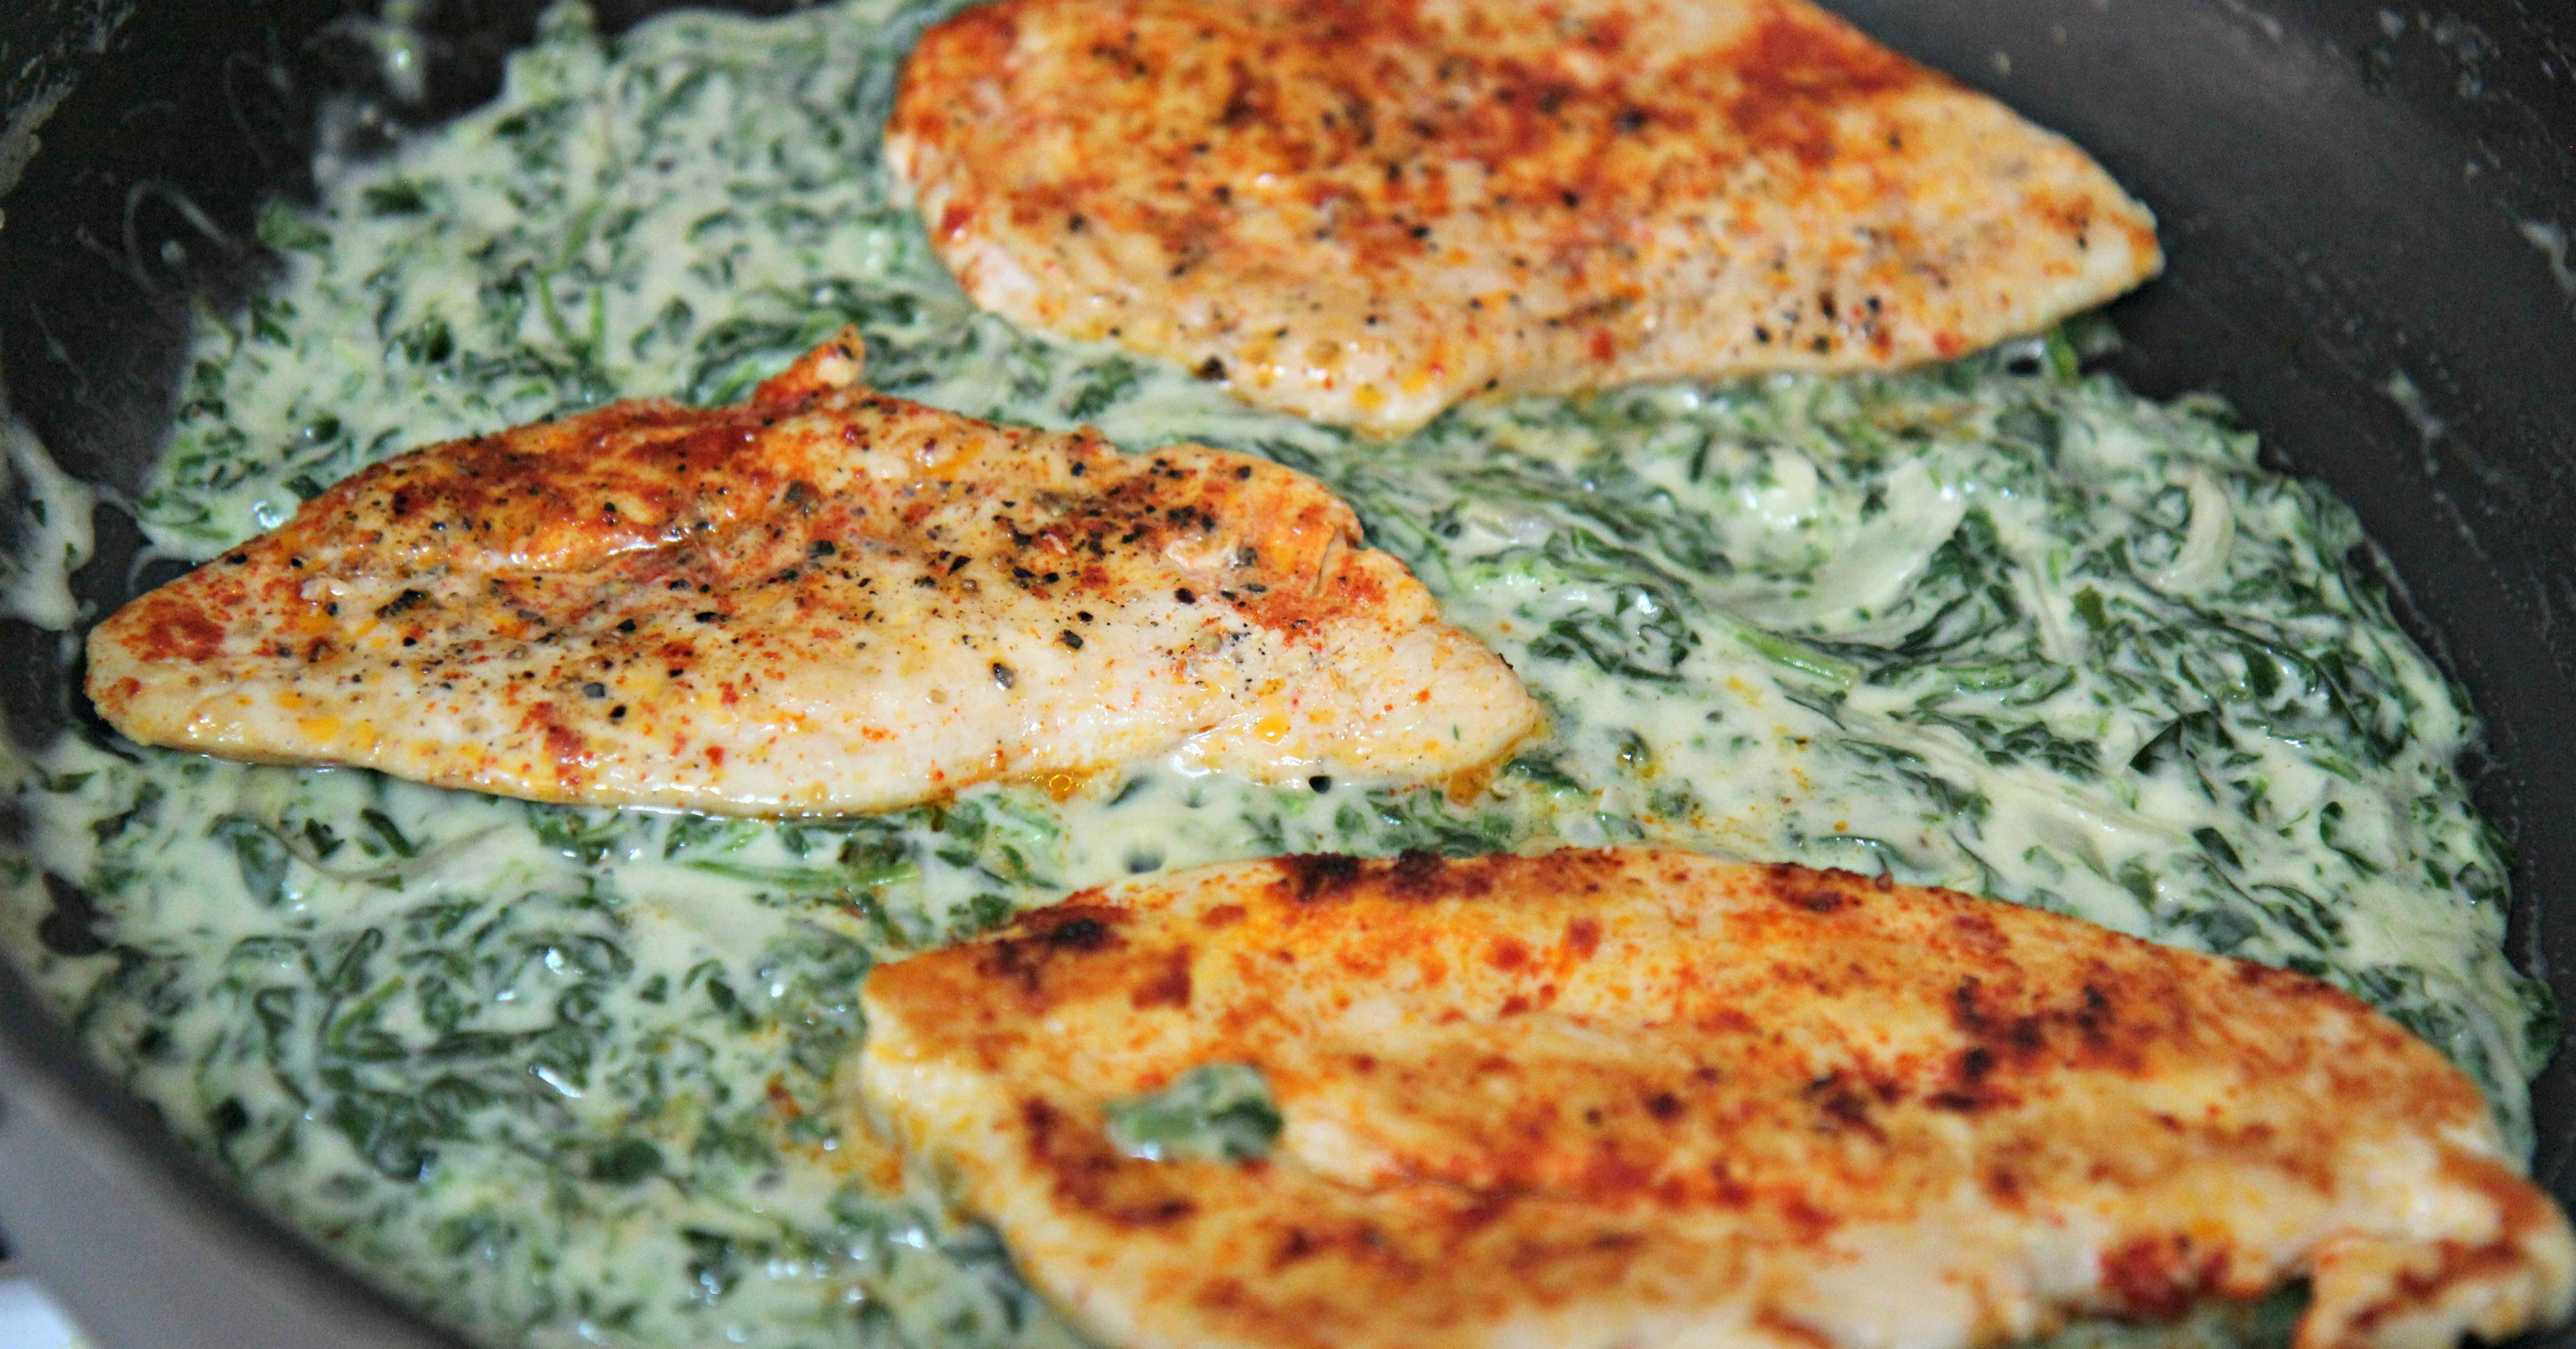 Perfectly seasoned chicken breast cooked in a creamy spinach sauce